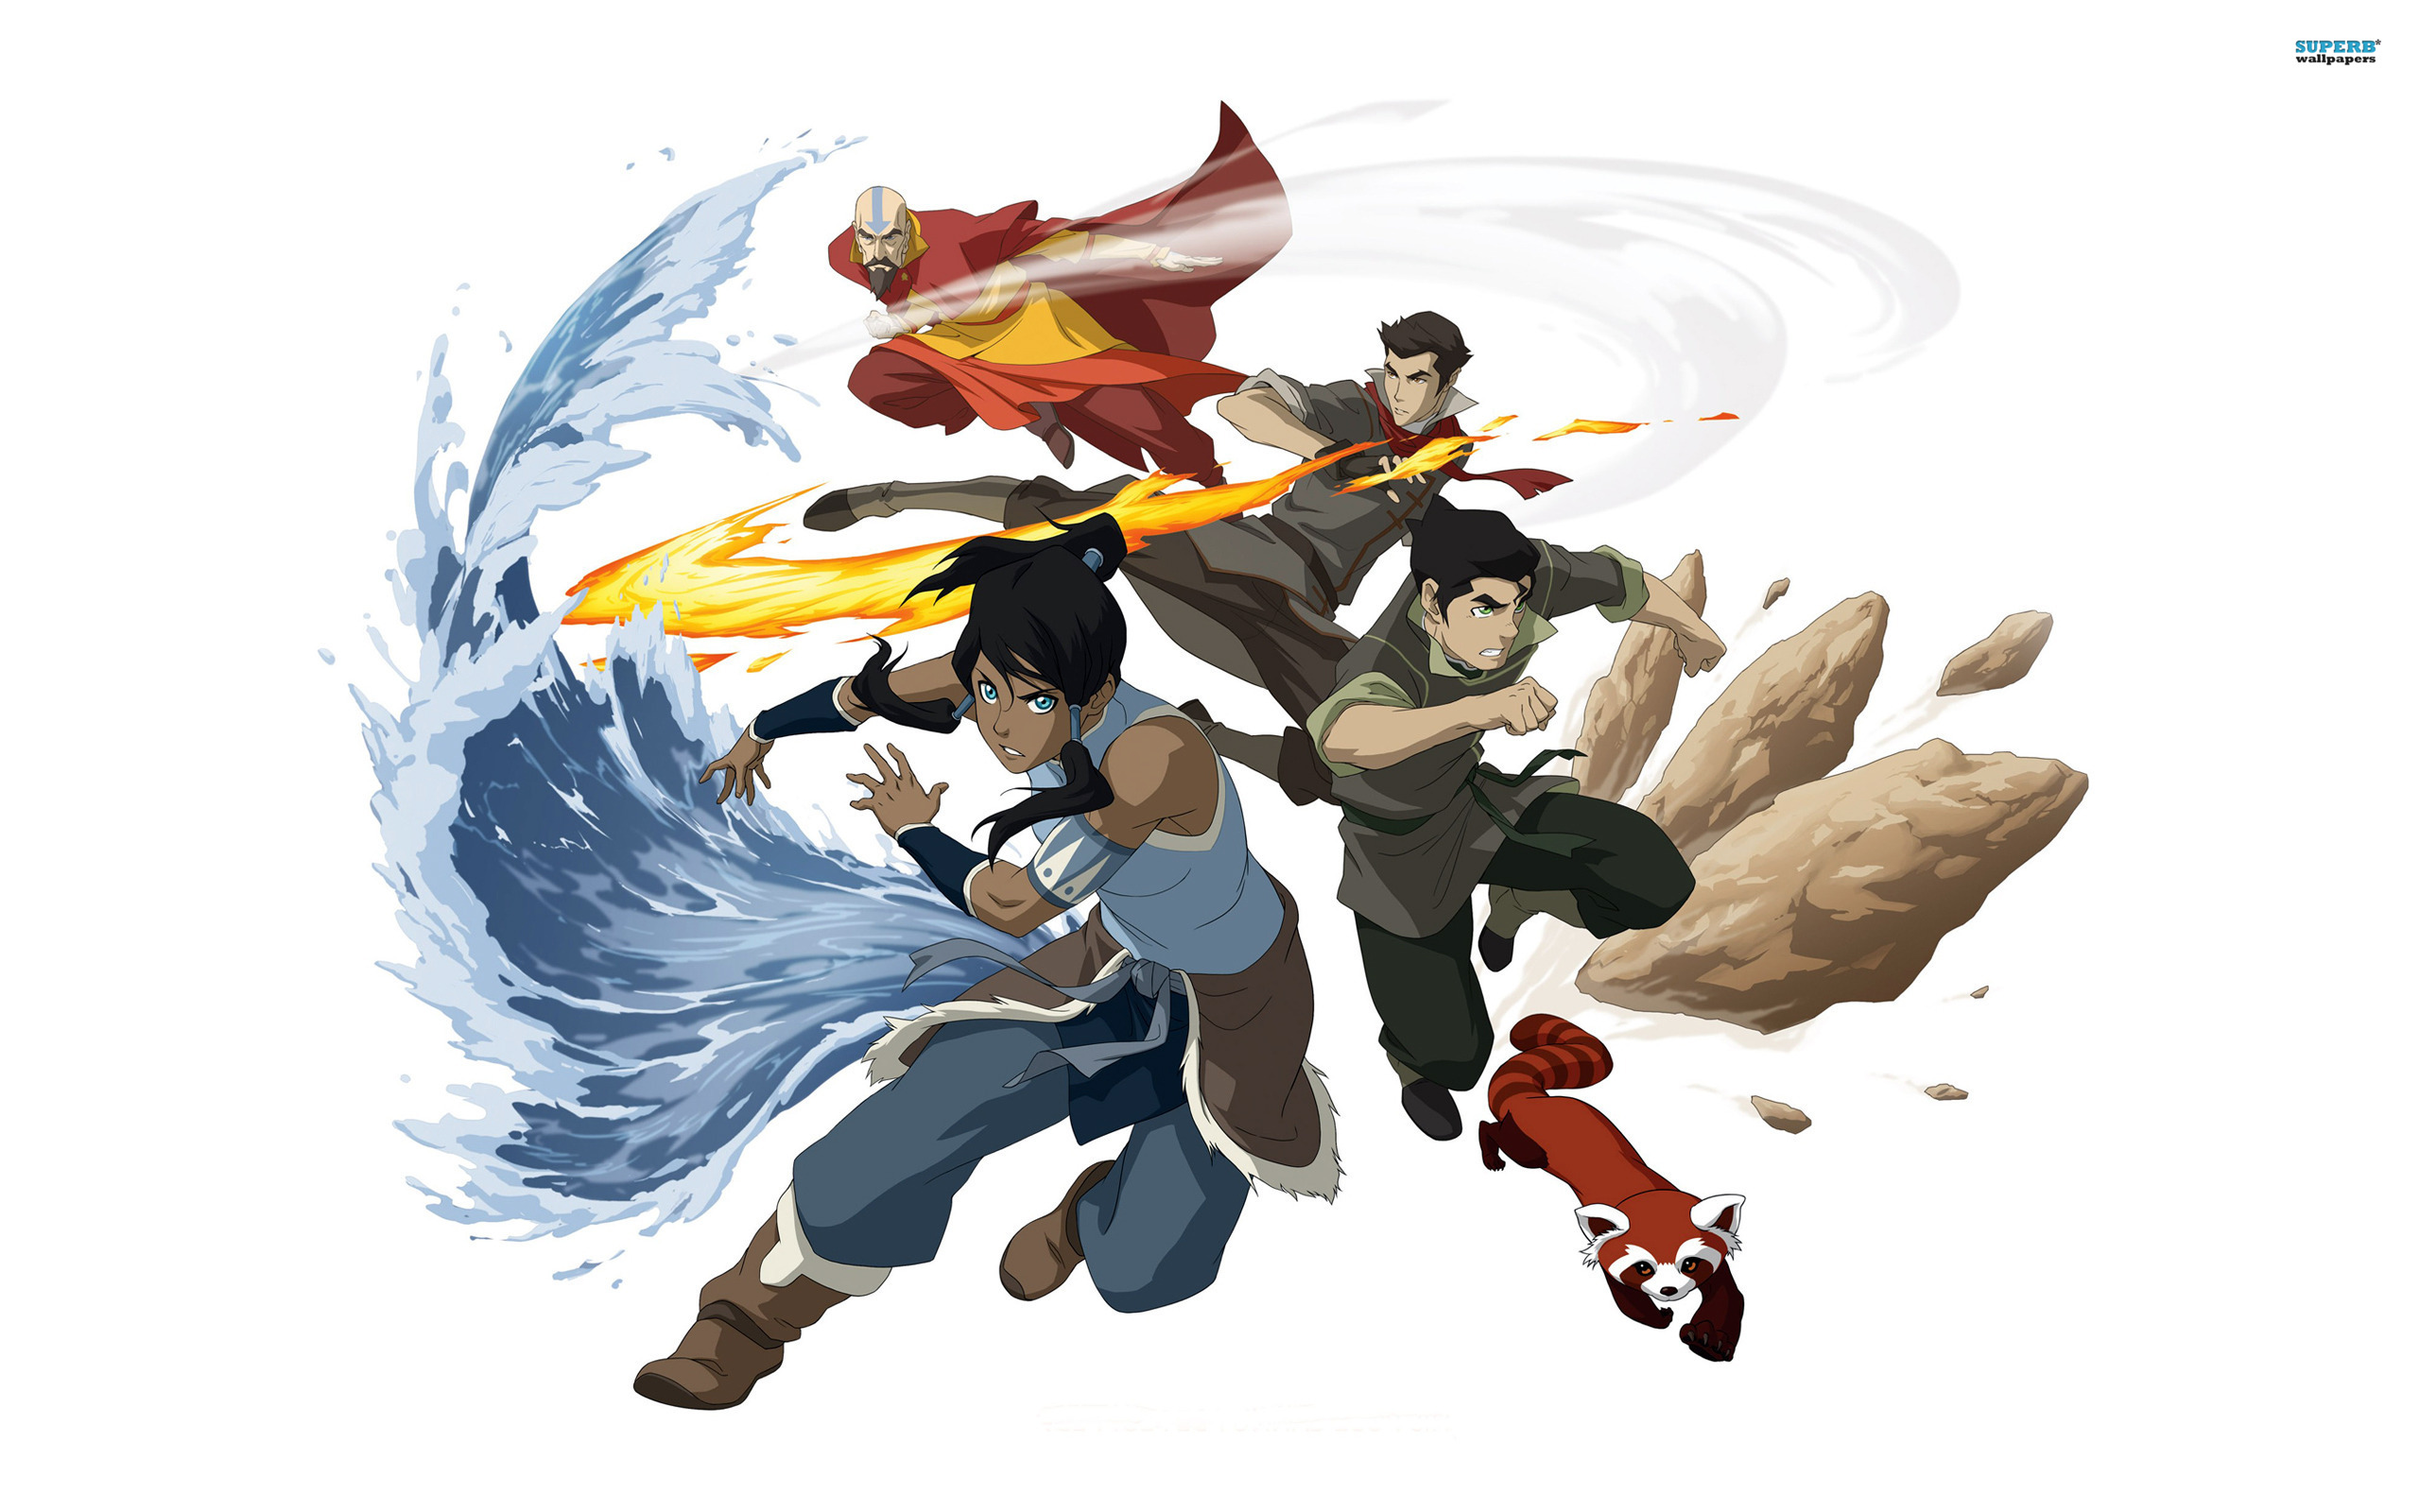 Avatar: The Legend of Korra wallpaper 2560x1600 jpg